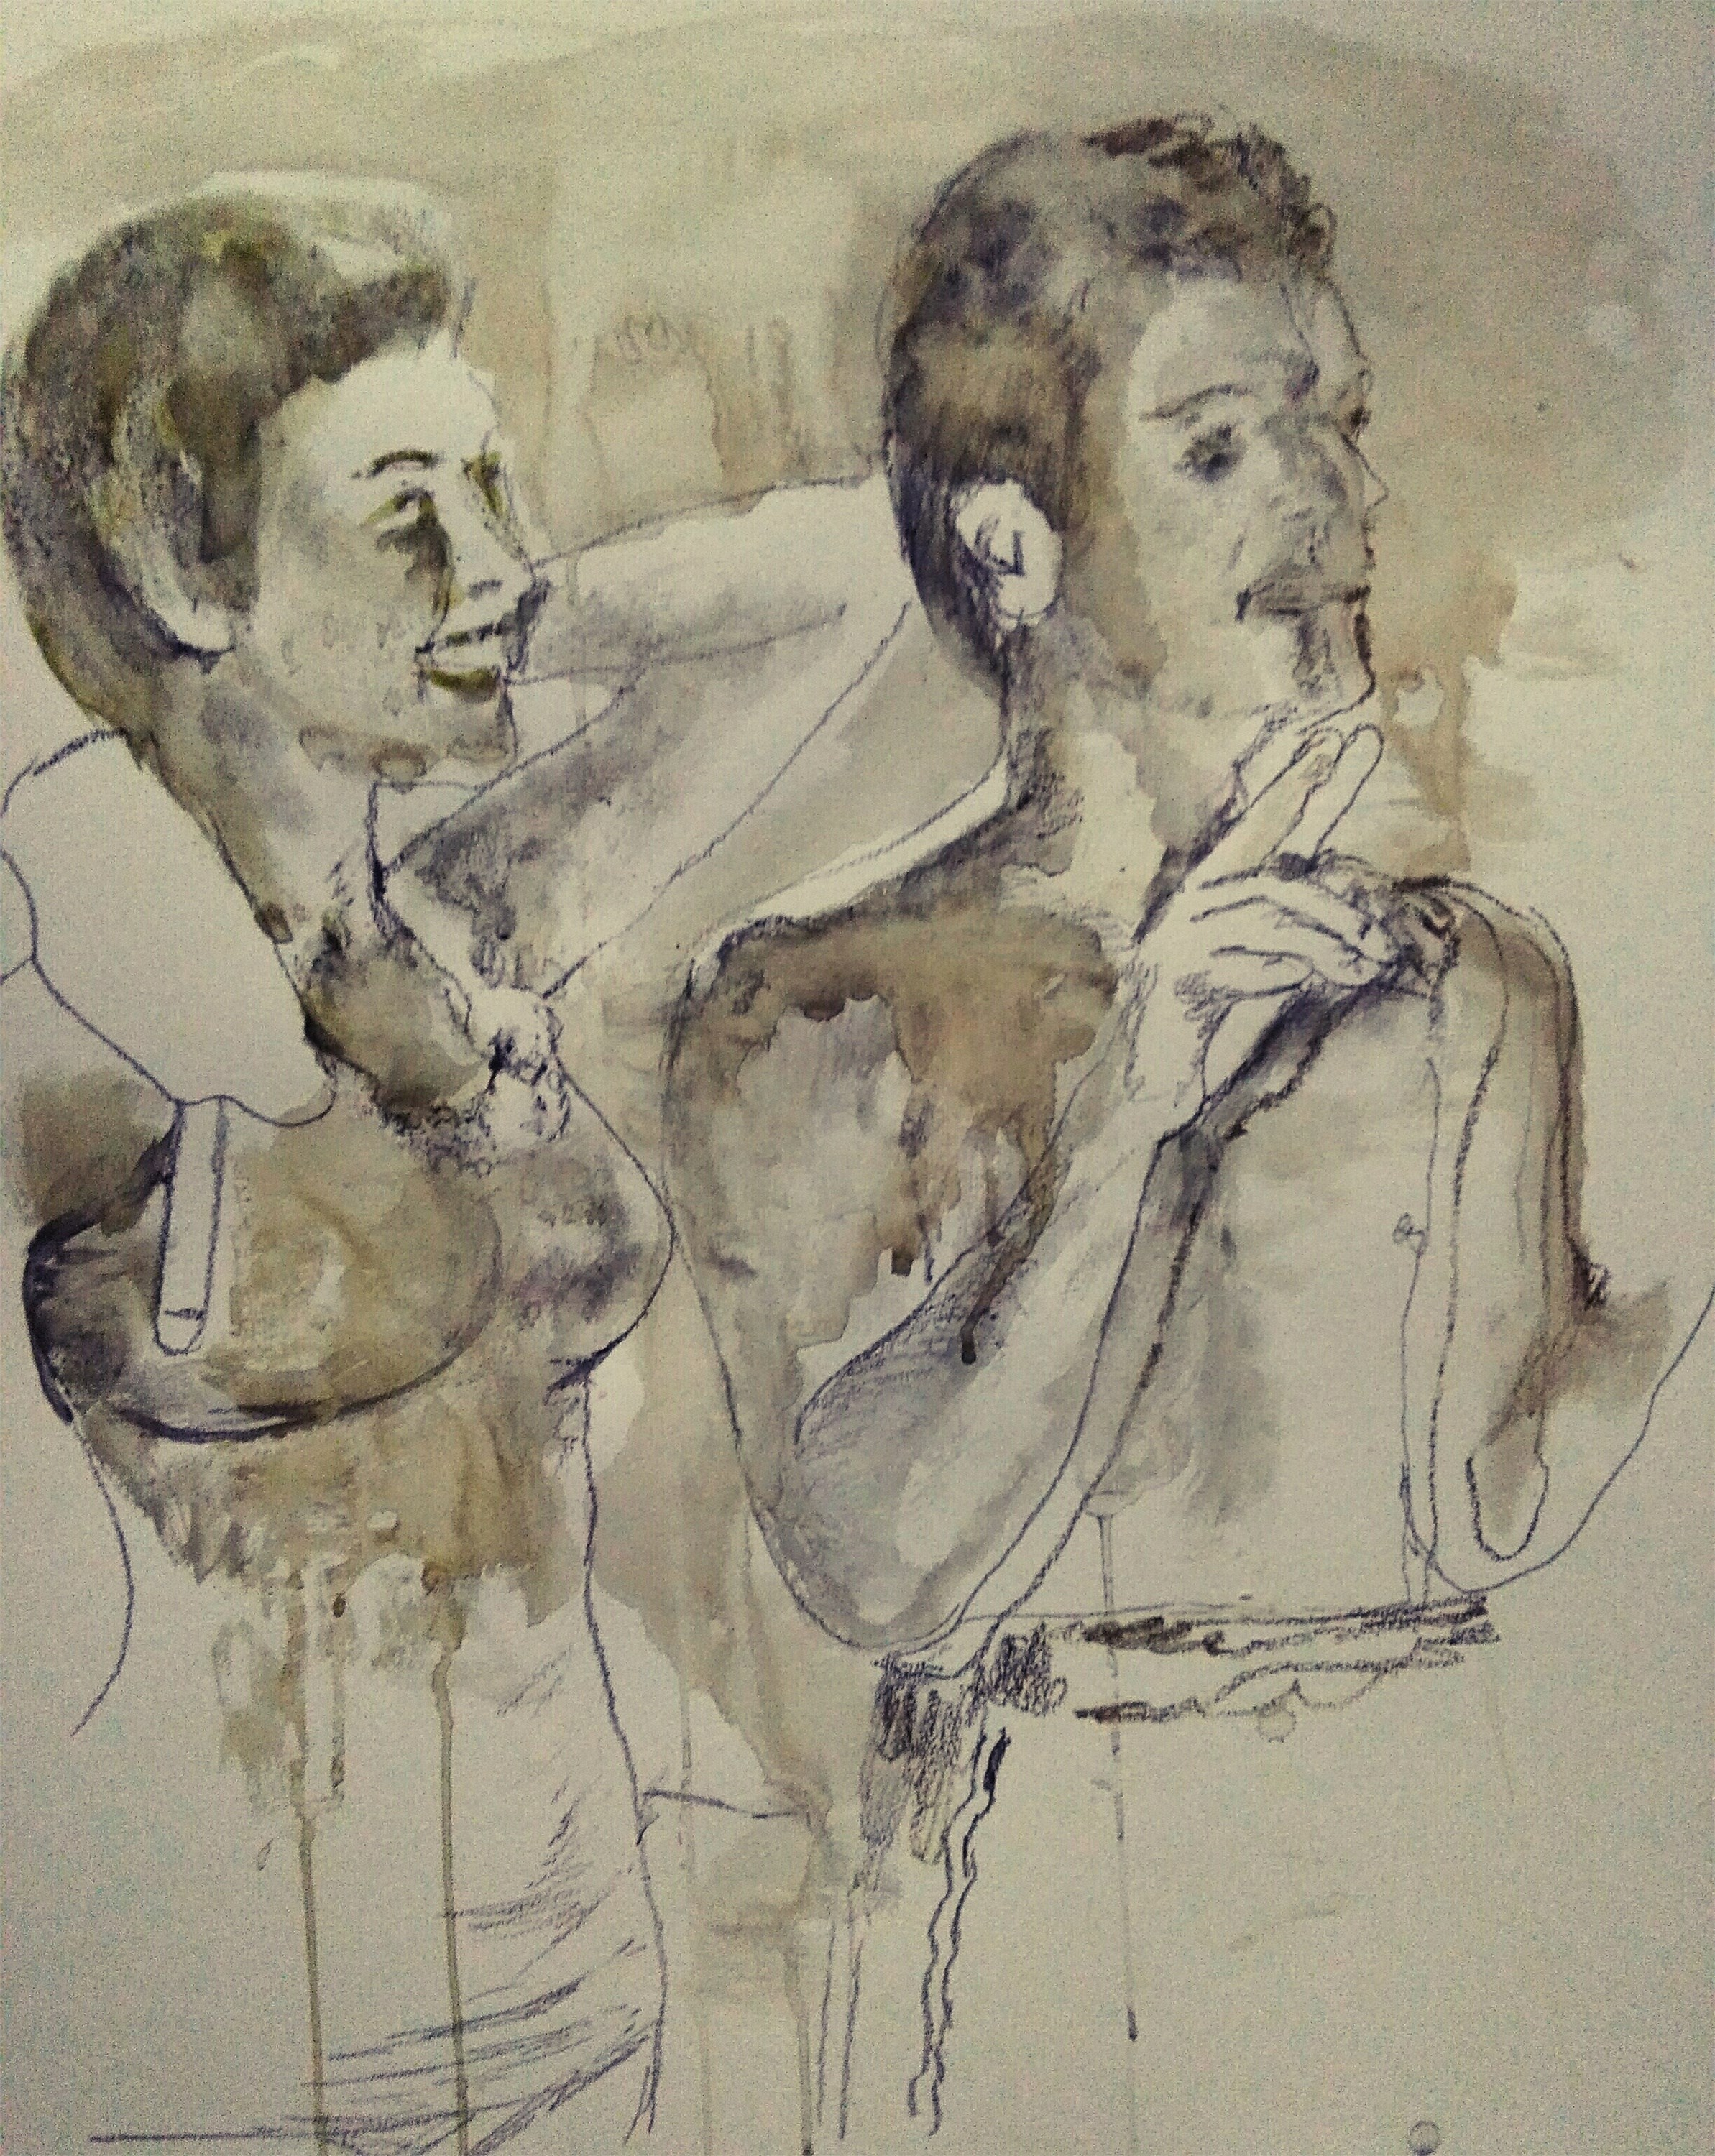 Unforgettable moments, original Human Figure Watercolor Painting by CARLA GONCALVES